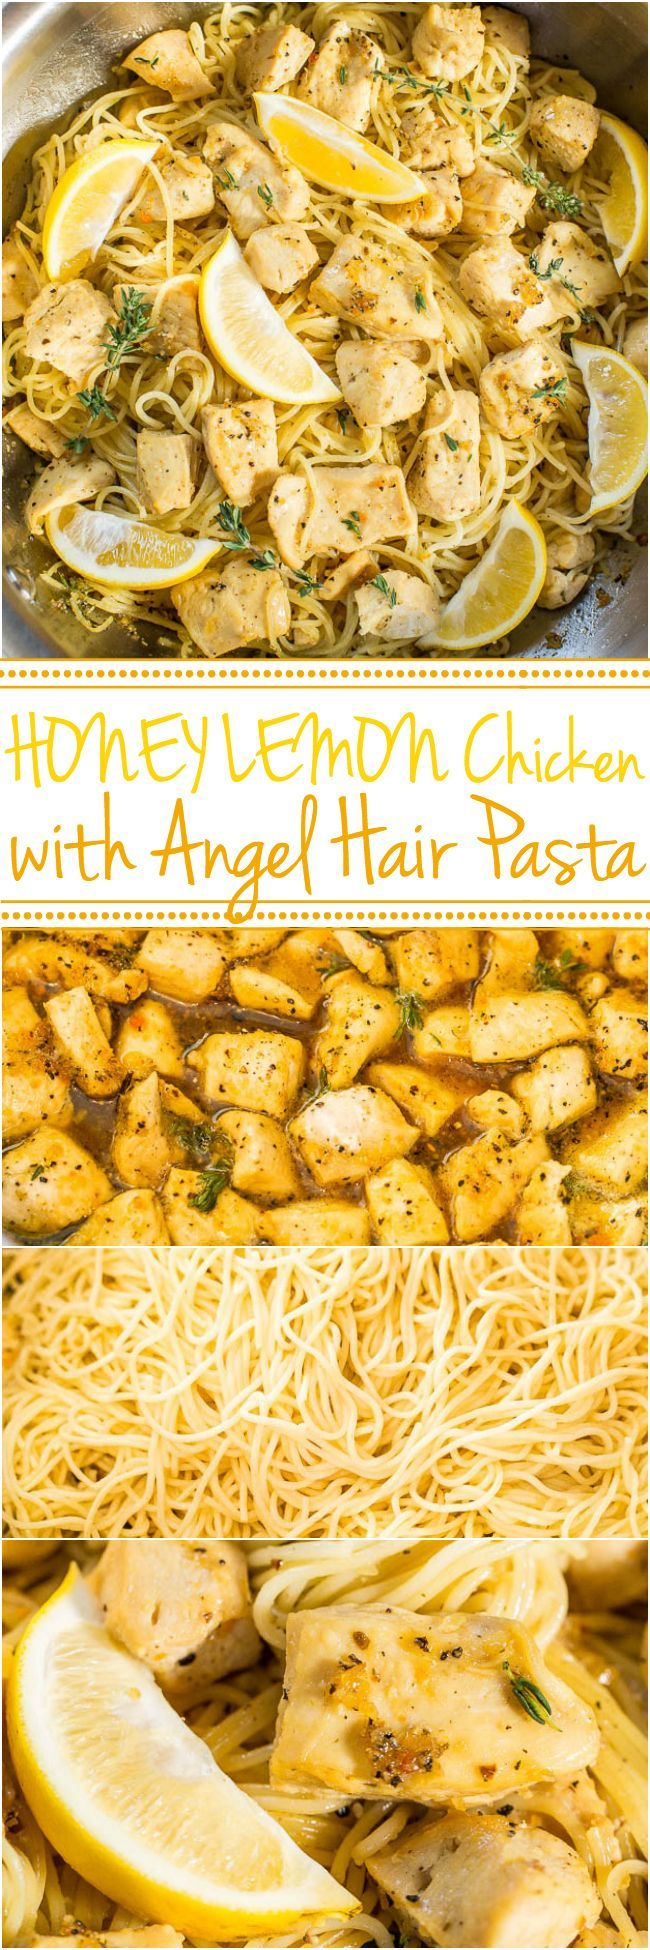 chrome hearts wallet chain Honey Lemon Chicken with Angel Hair Pasta   Easy  ready in 20 minutes  and you  39 ll love the tangy sweet flavor   A healthy weeknight dinner for those busy nights